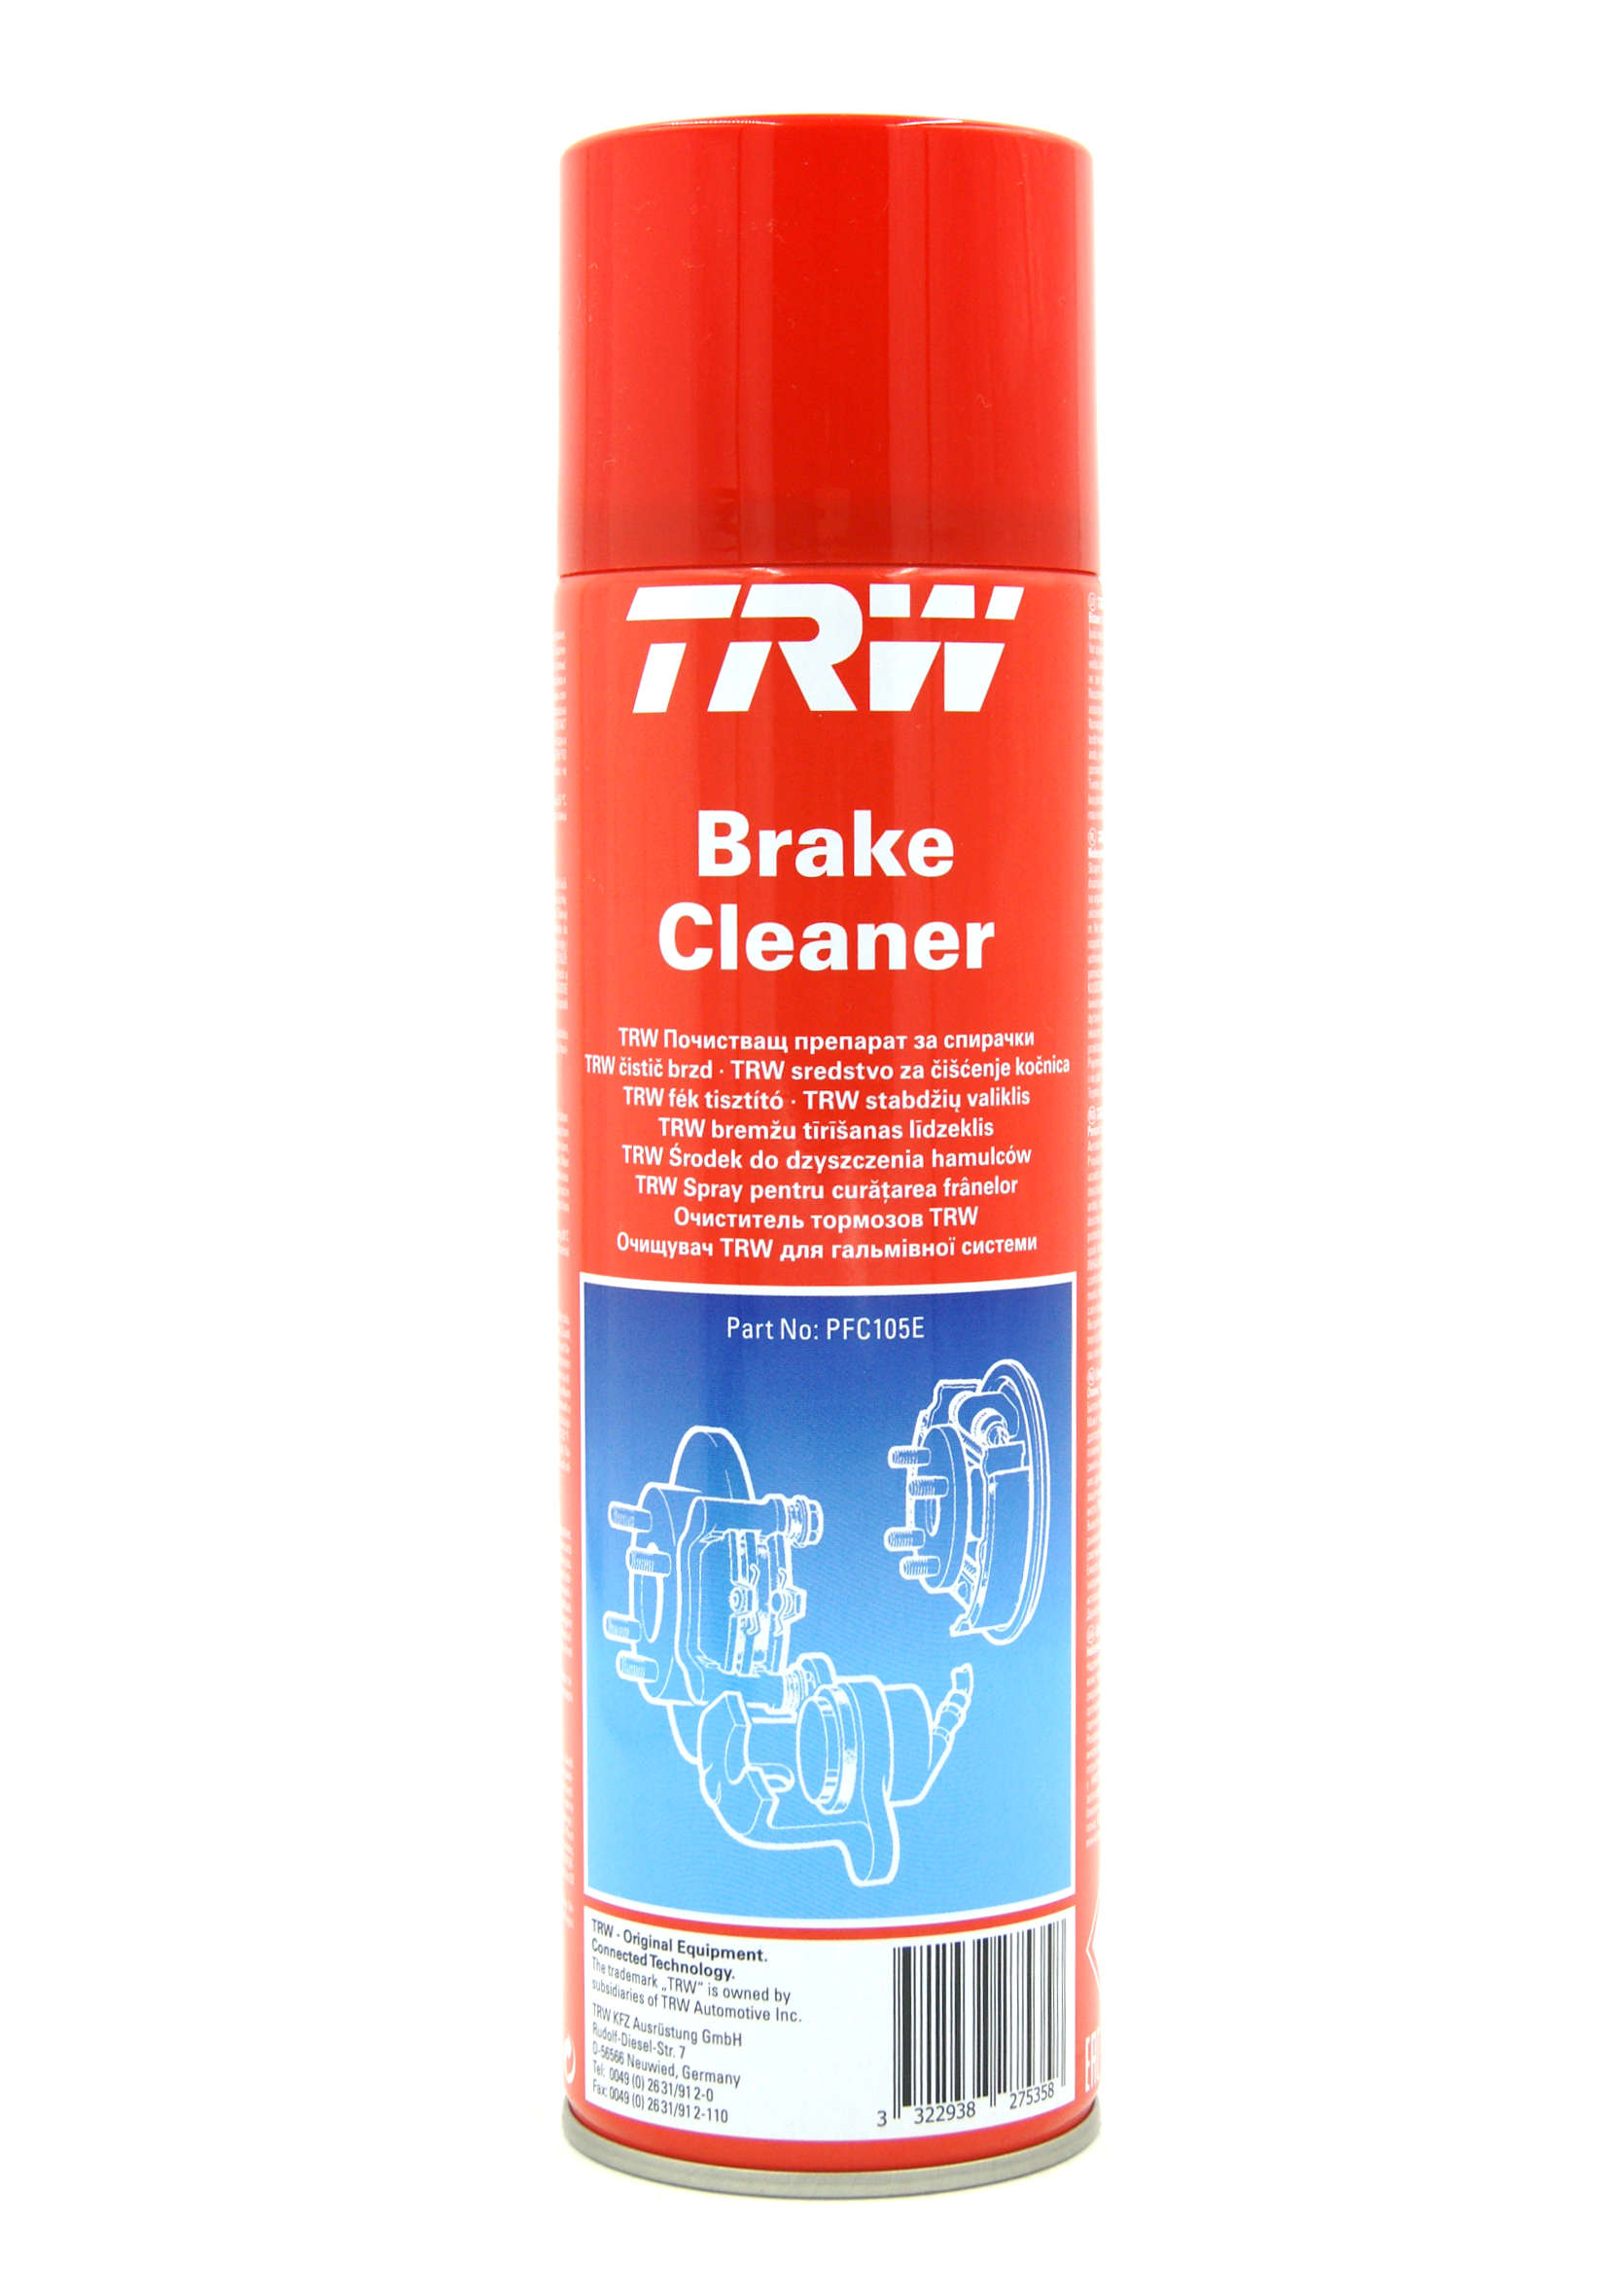 TRW Brake Cleaner Zmywacz do hamulców 500ml